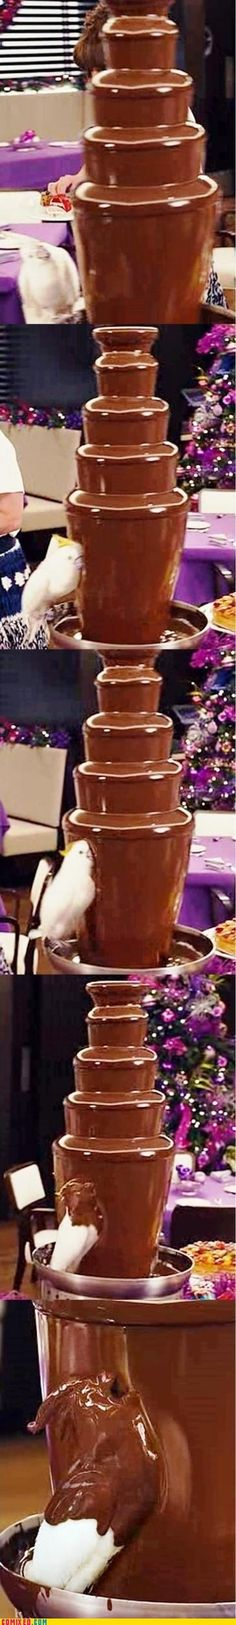 Hahaha, silly bird :) Do you know how hard it is to get chocolate stains out of white?